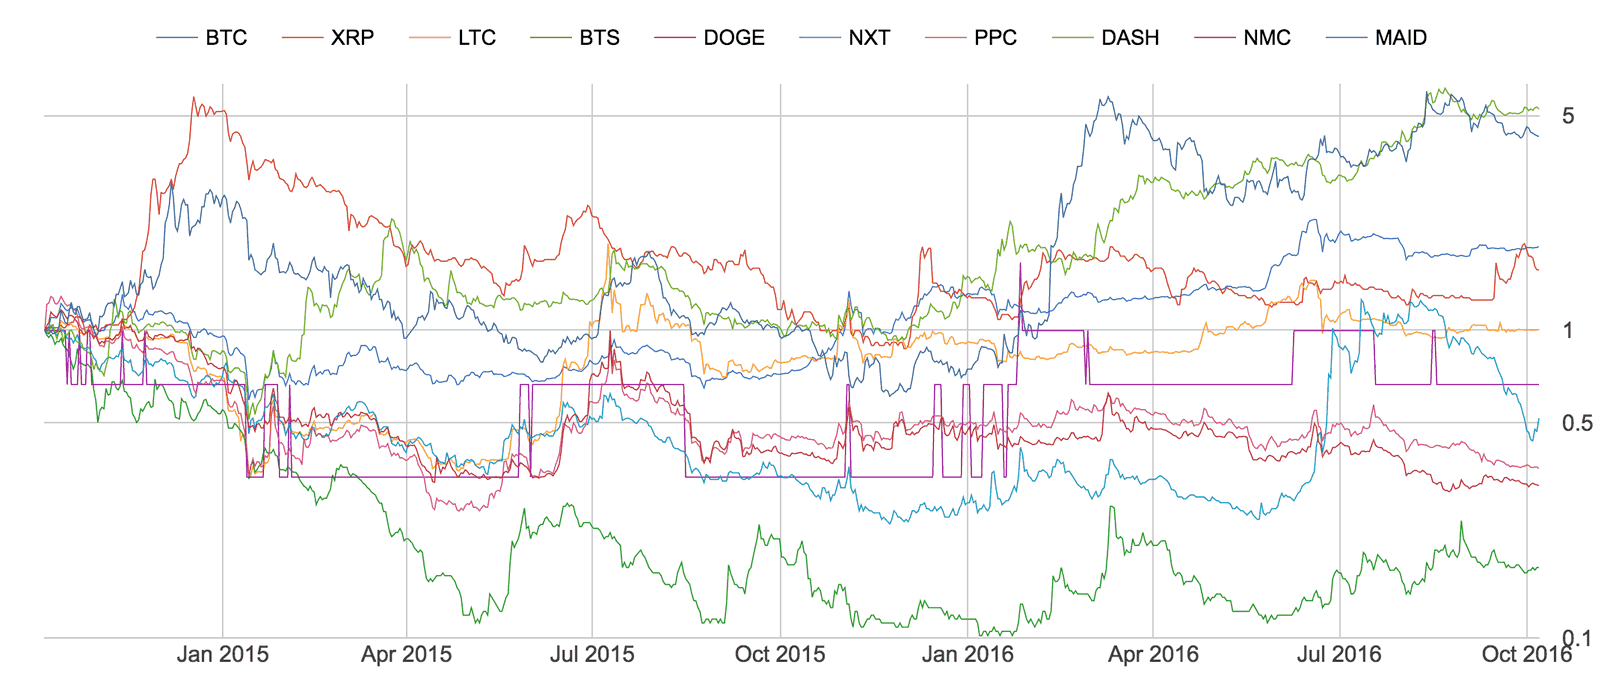 Top 10 coins, returns starting 24 months ago